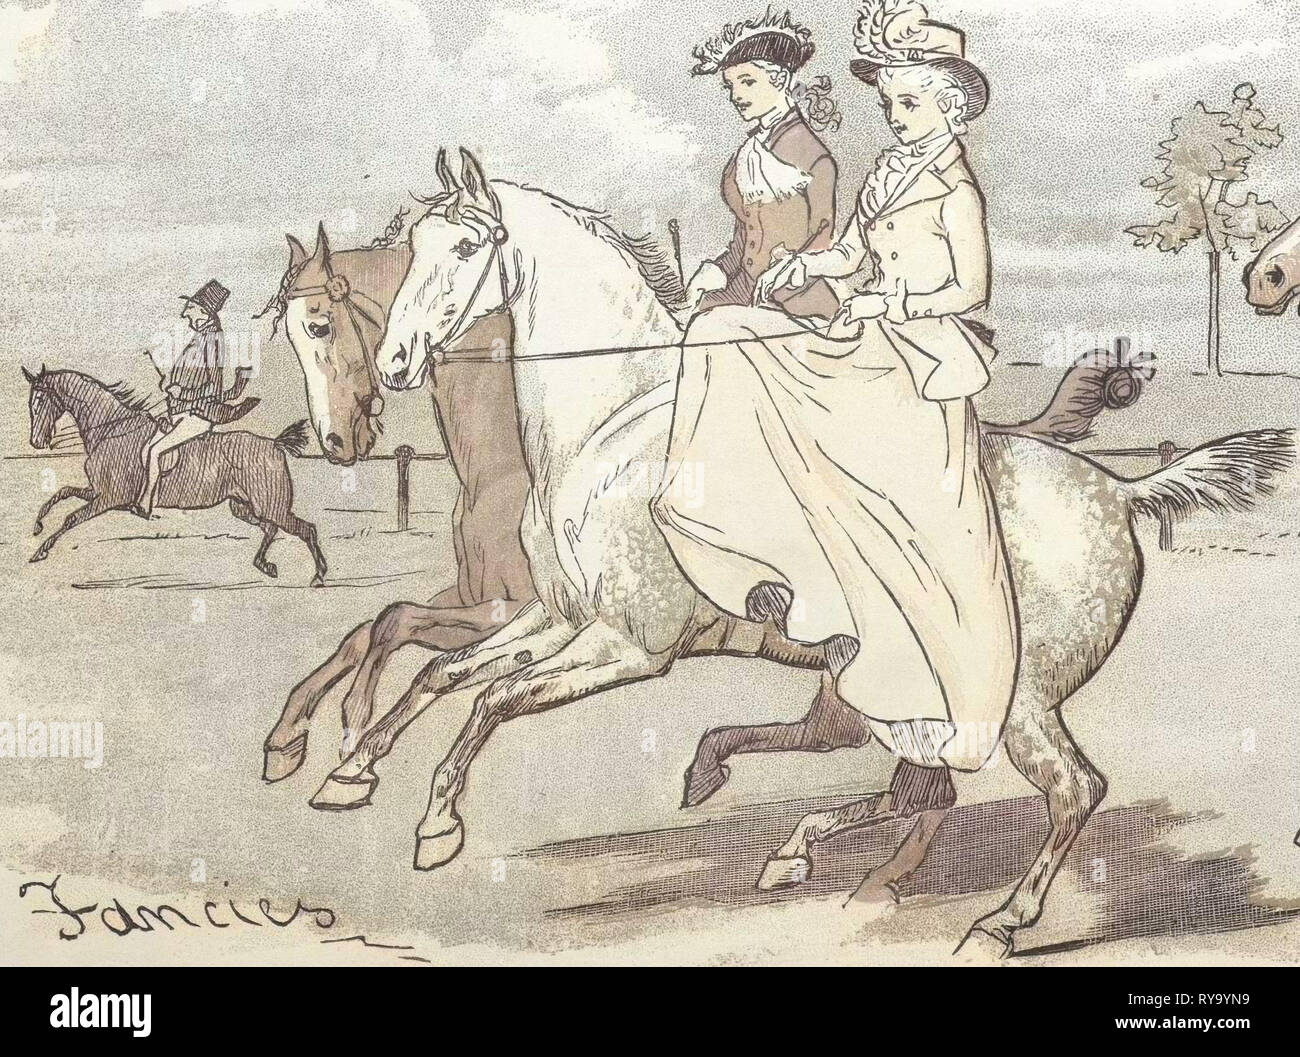 Two Ladies Out Horseriding - Stock Image